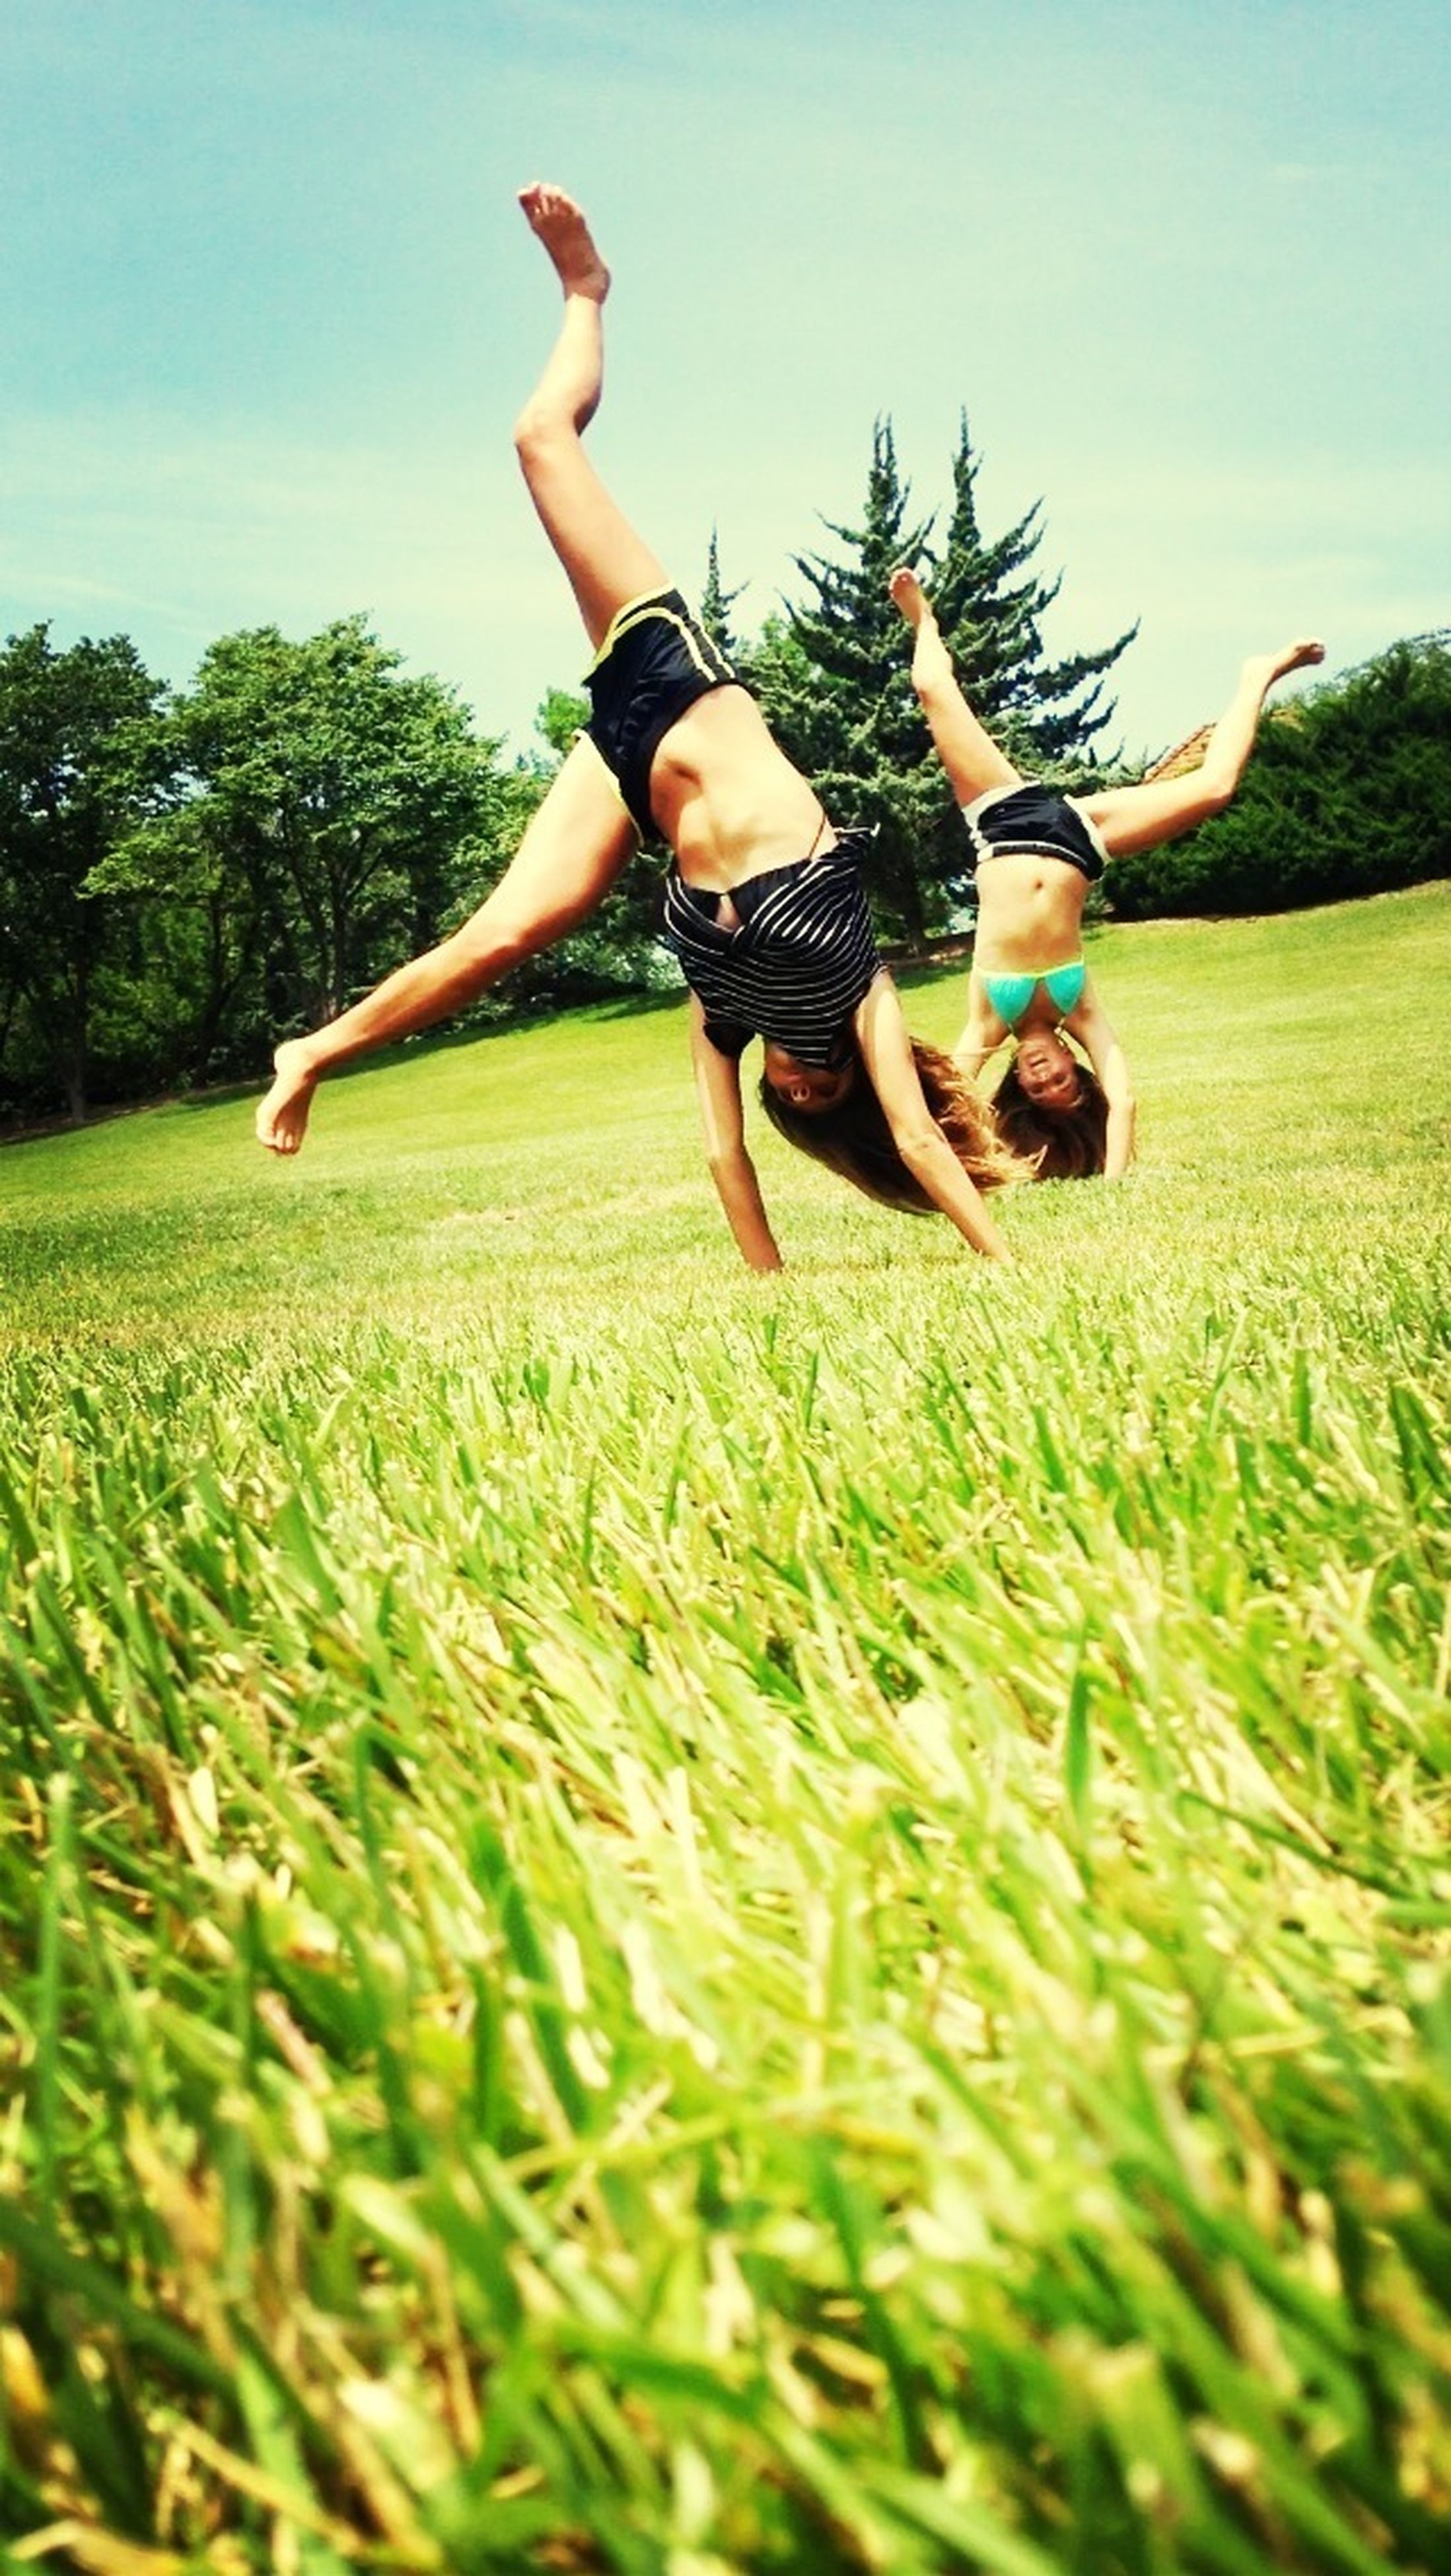 grass, leisure activity, lifestyles, field, childhood, full length, fun, grassy, enjoyment, mid-air, playful, green color, playing, togetherness, boys, casual clothing, sky